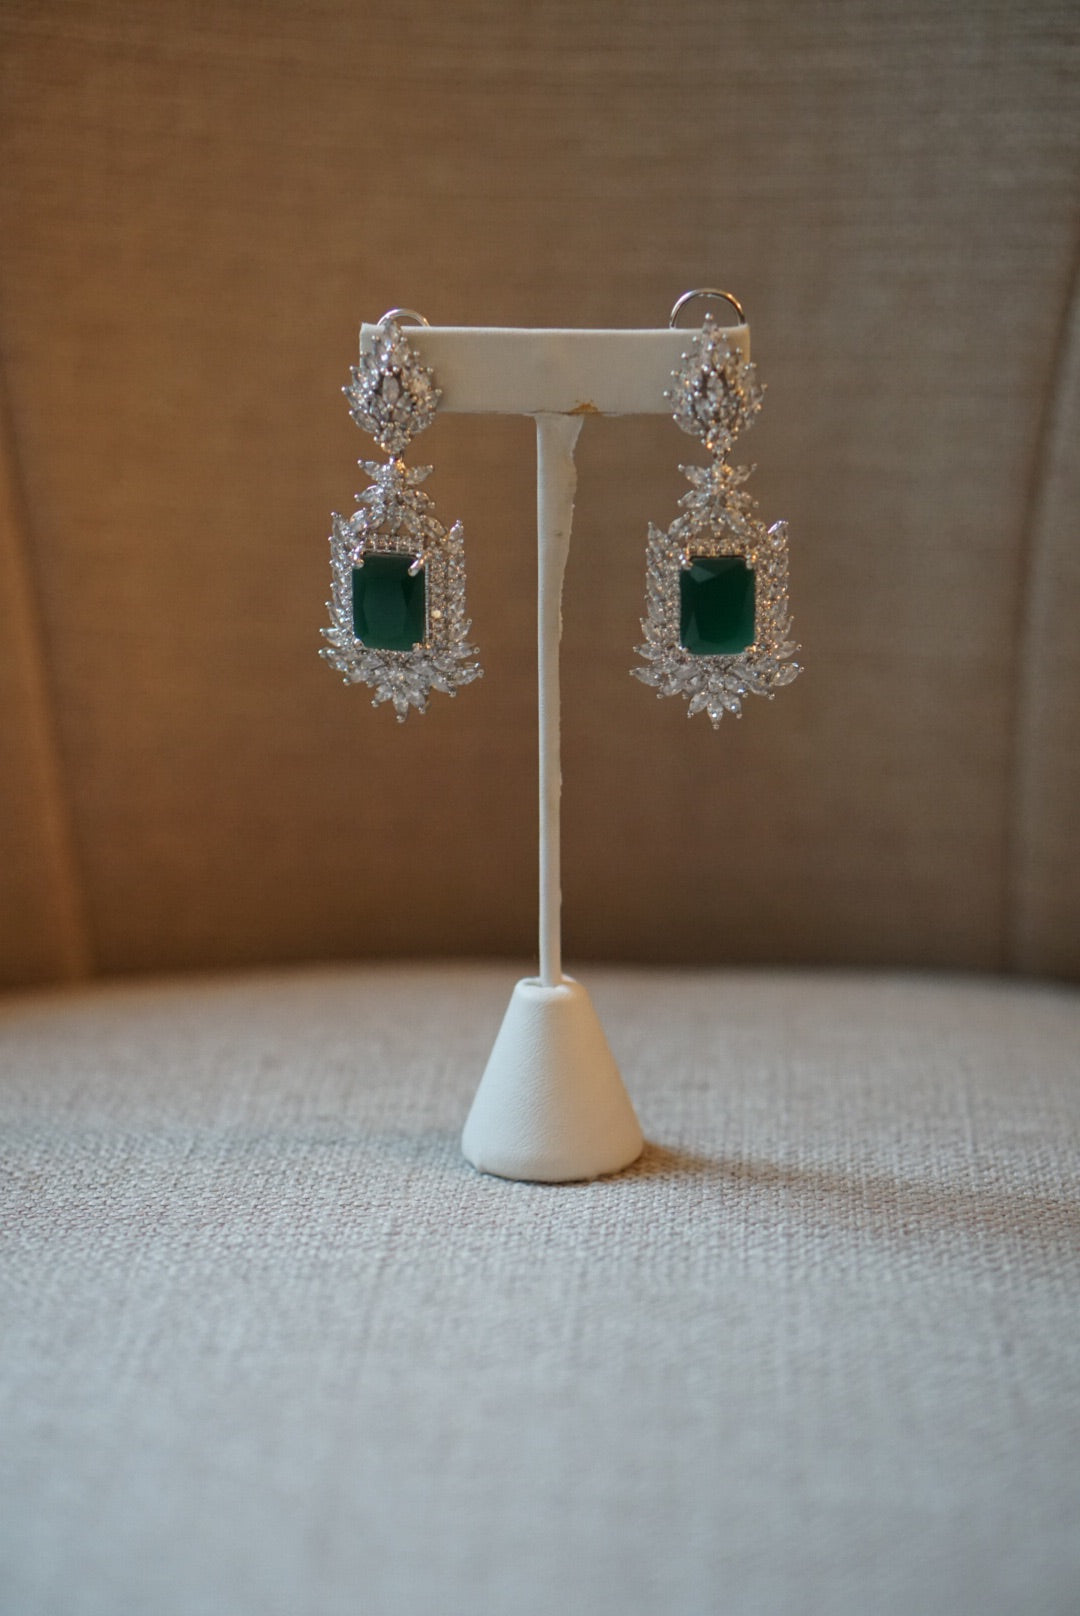 ReeMat Faux Emerald Earrings